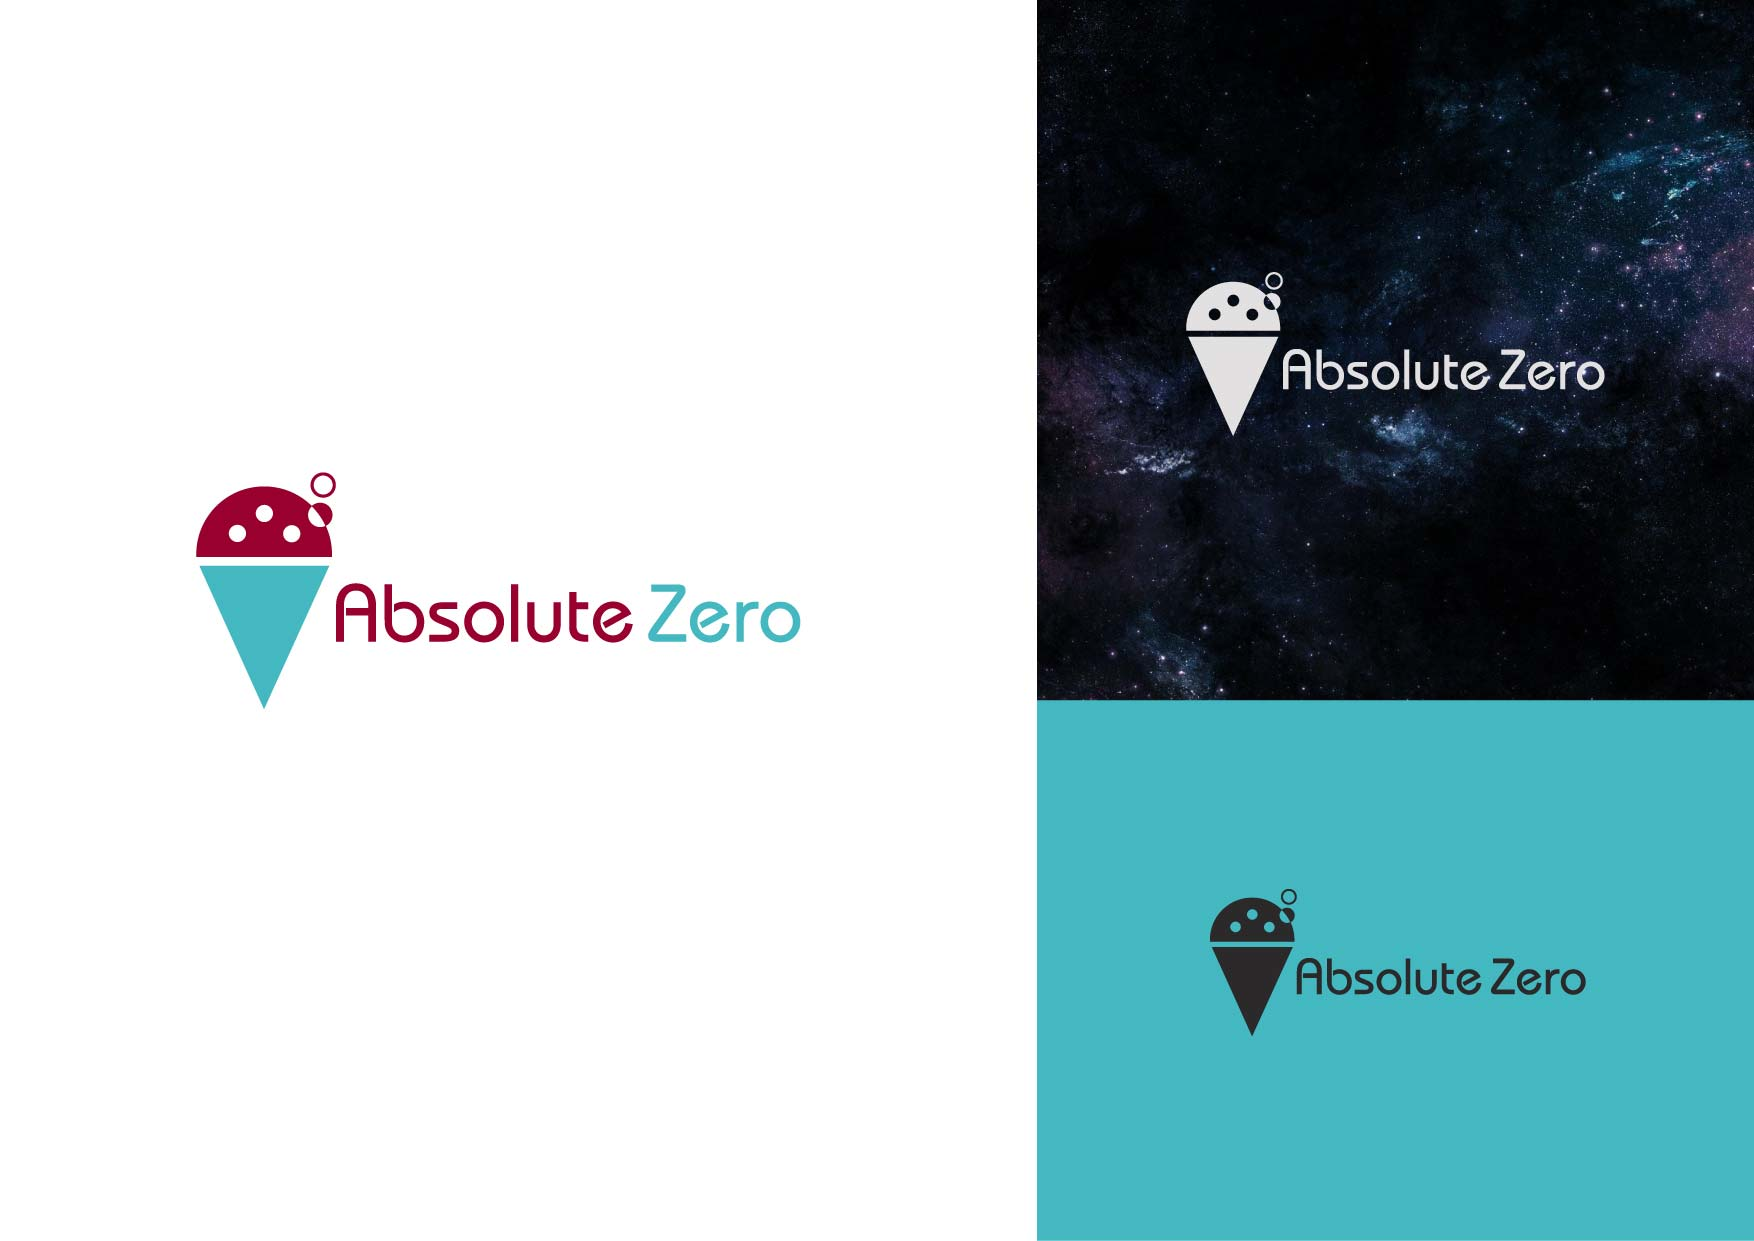 Logo Design by Osi Indra - Entry No. 9 in the Logo Design Contest Imaginative Logo Design for Absolute Zero.